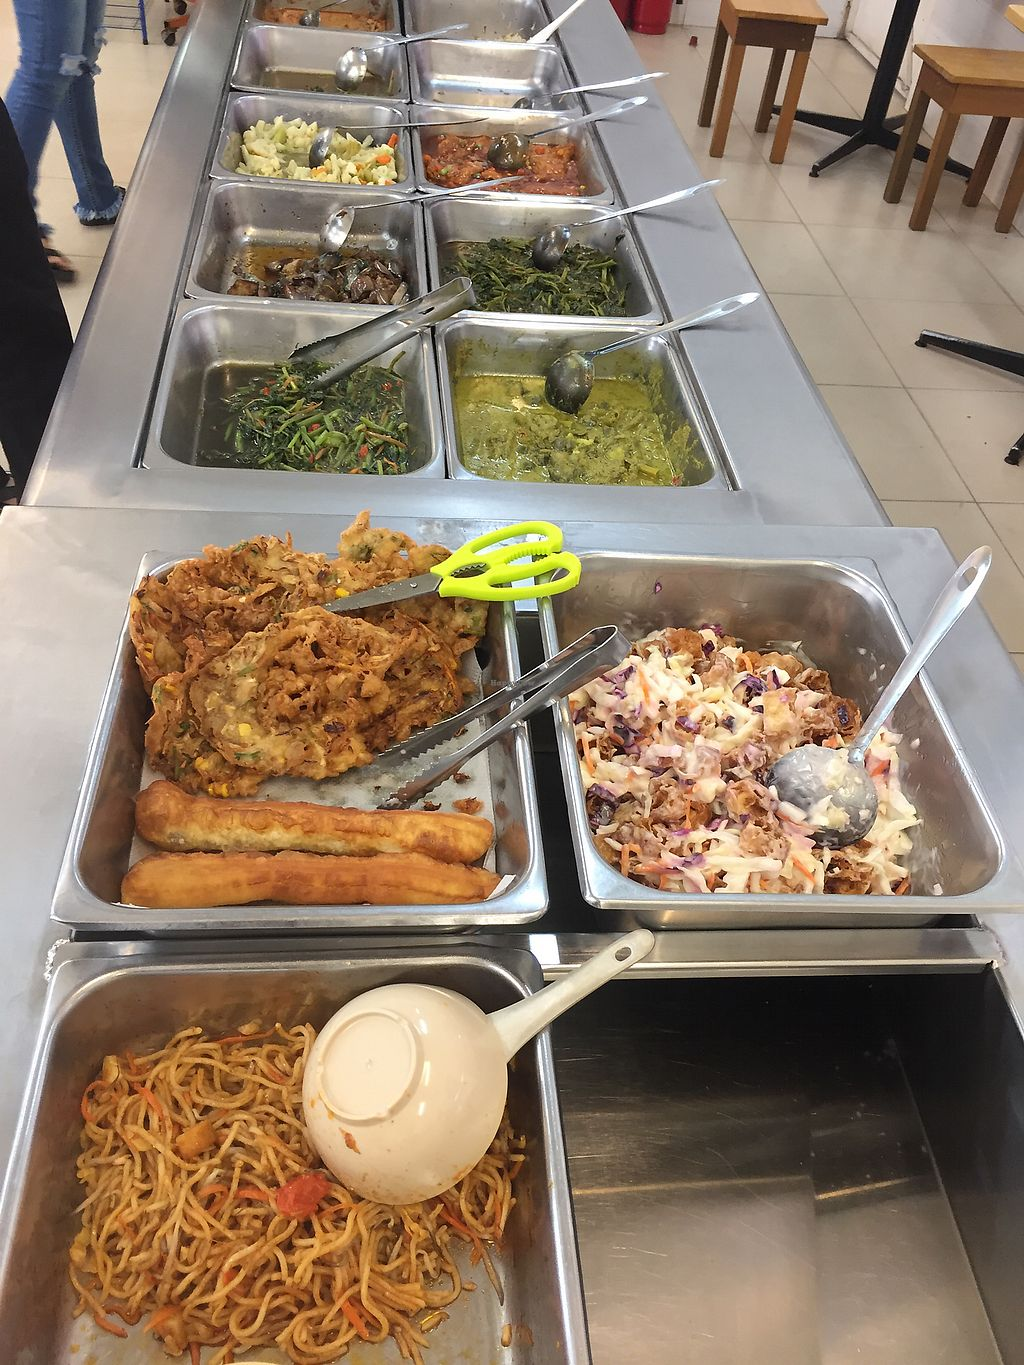 """Photo of Gong De Lin Vegetarian  by <a href=""""/members/profile/Josi"""">Josi</a> <br/>Veggie Buffet <br/> March 21, 2018  - <a href='/contact/abuse/image/49377/373602'>Report</a>"""